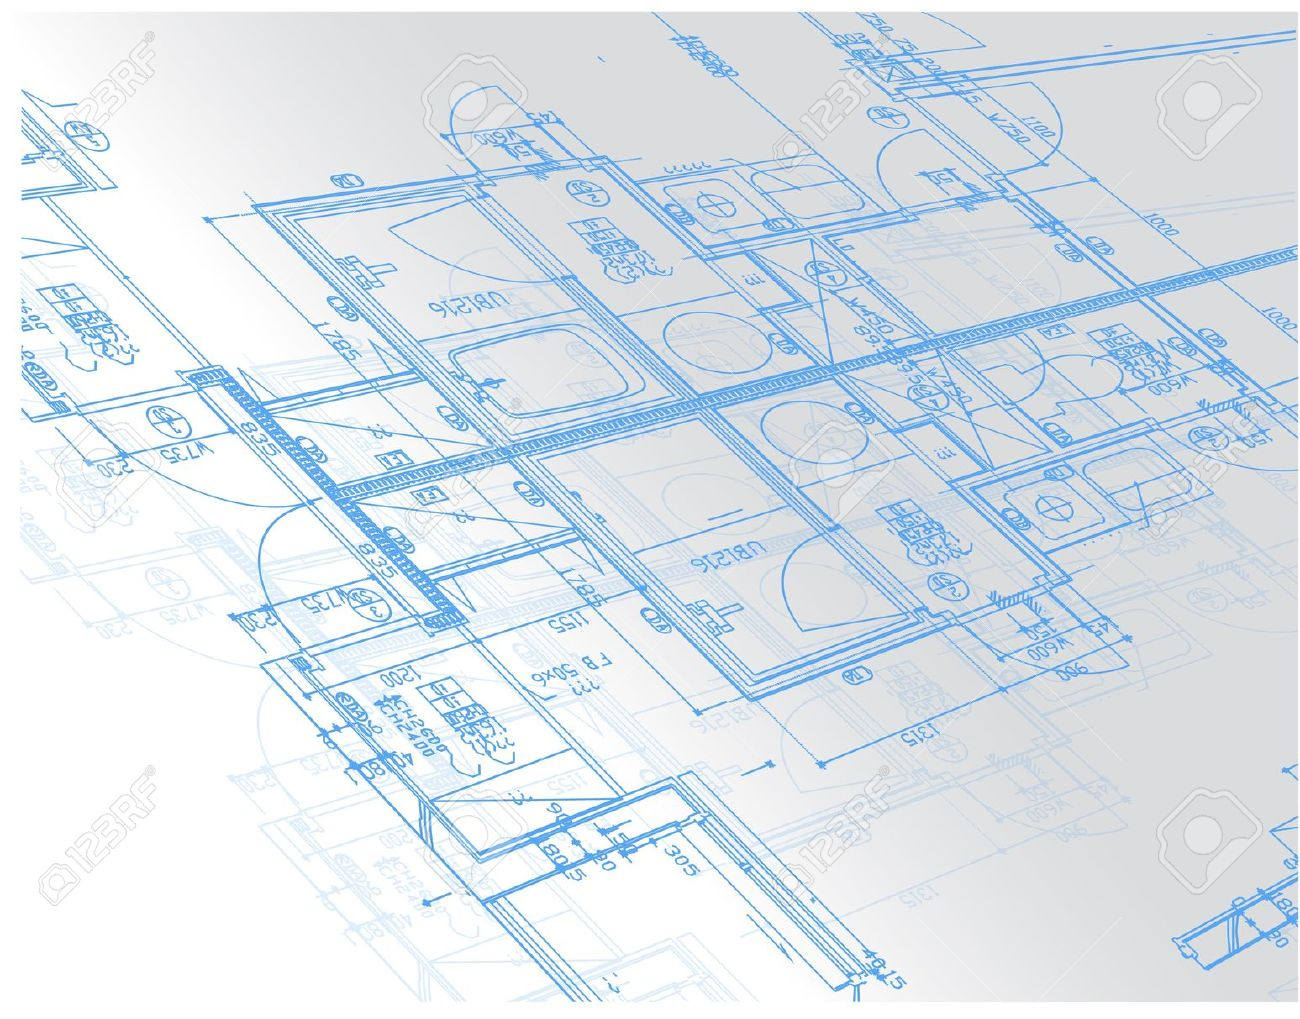 9845967 sample of architectural blueprints over a light gray 9845967 sample of architectural blueprints over a light gray background blueprint stock vector malvernweather